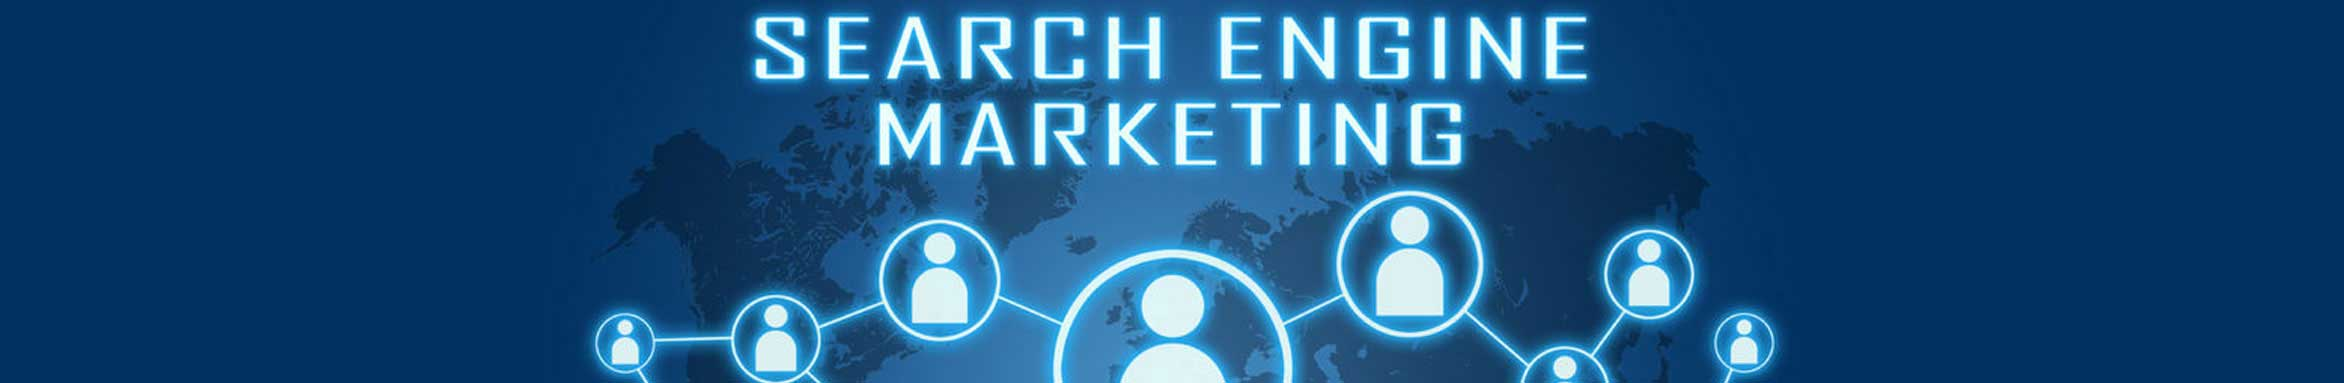 Search Engine Marketing (SEM) Solutions